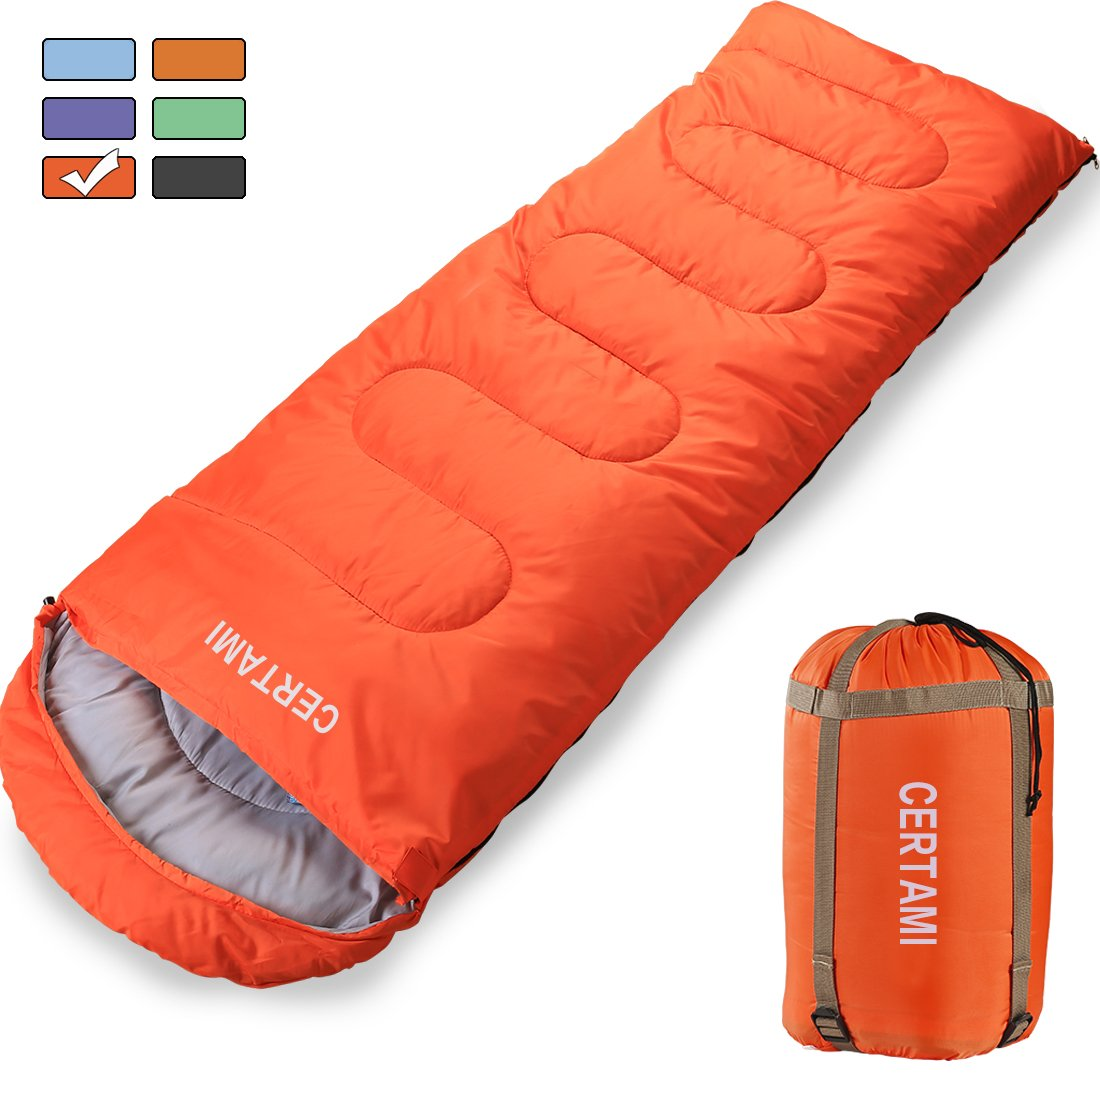 CER TAMI Sleeping Bag for Adults, Girls & Boys, Lightweight Waterproof Compact, Great for 4 Season Warm & Cold Weather, Perfect for Outdoor Backpacking, Camping, Hiking. (Mandarin Red/Left Zip) by CER TAMI